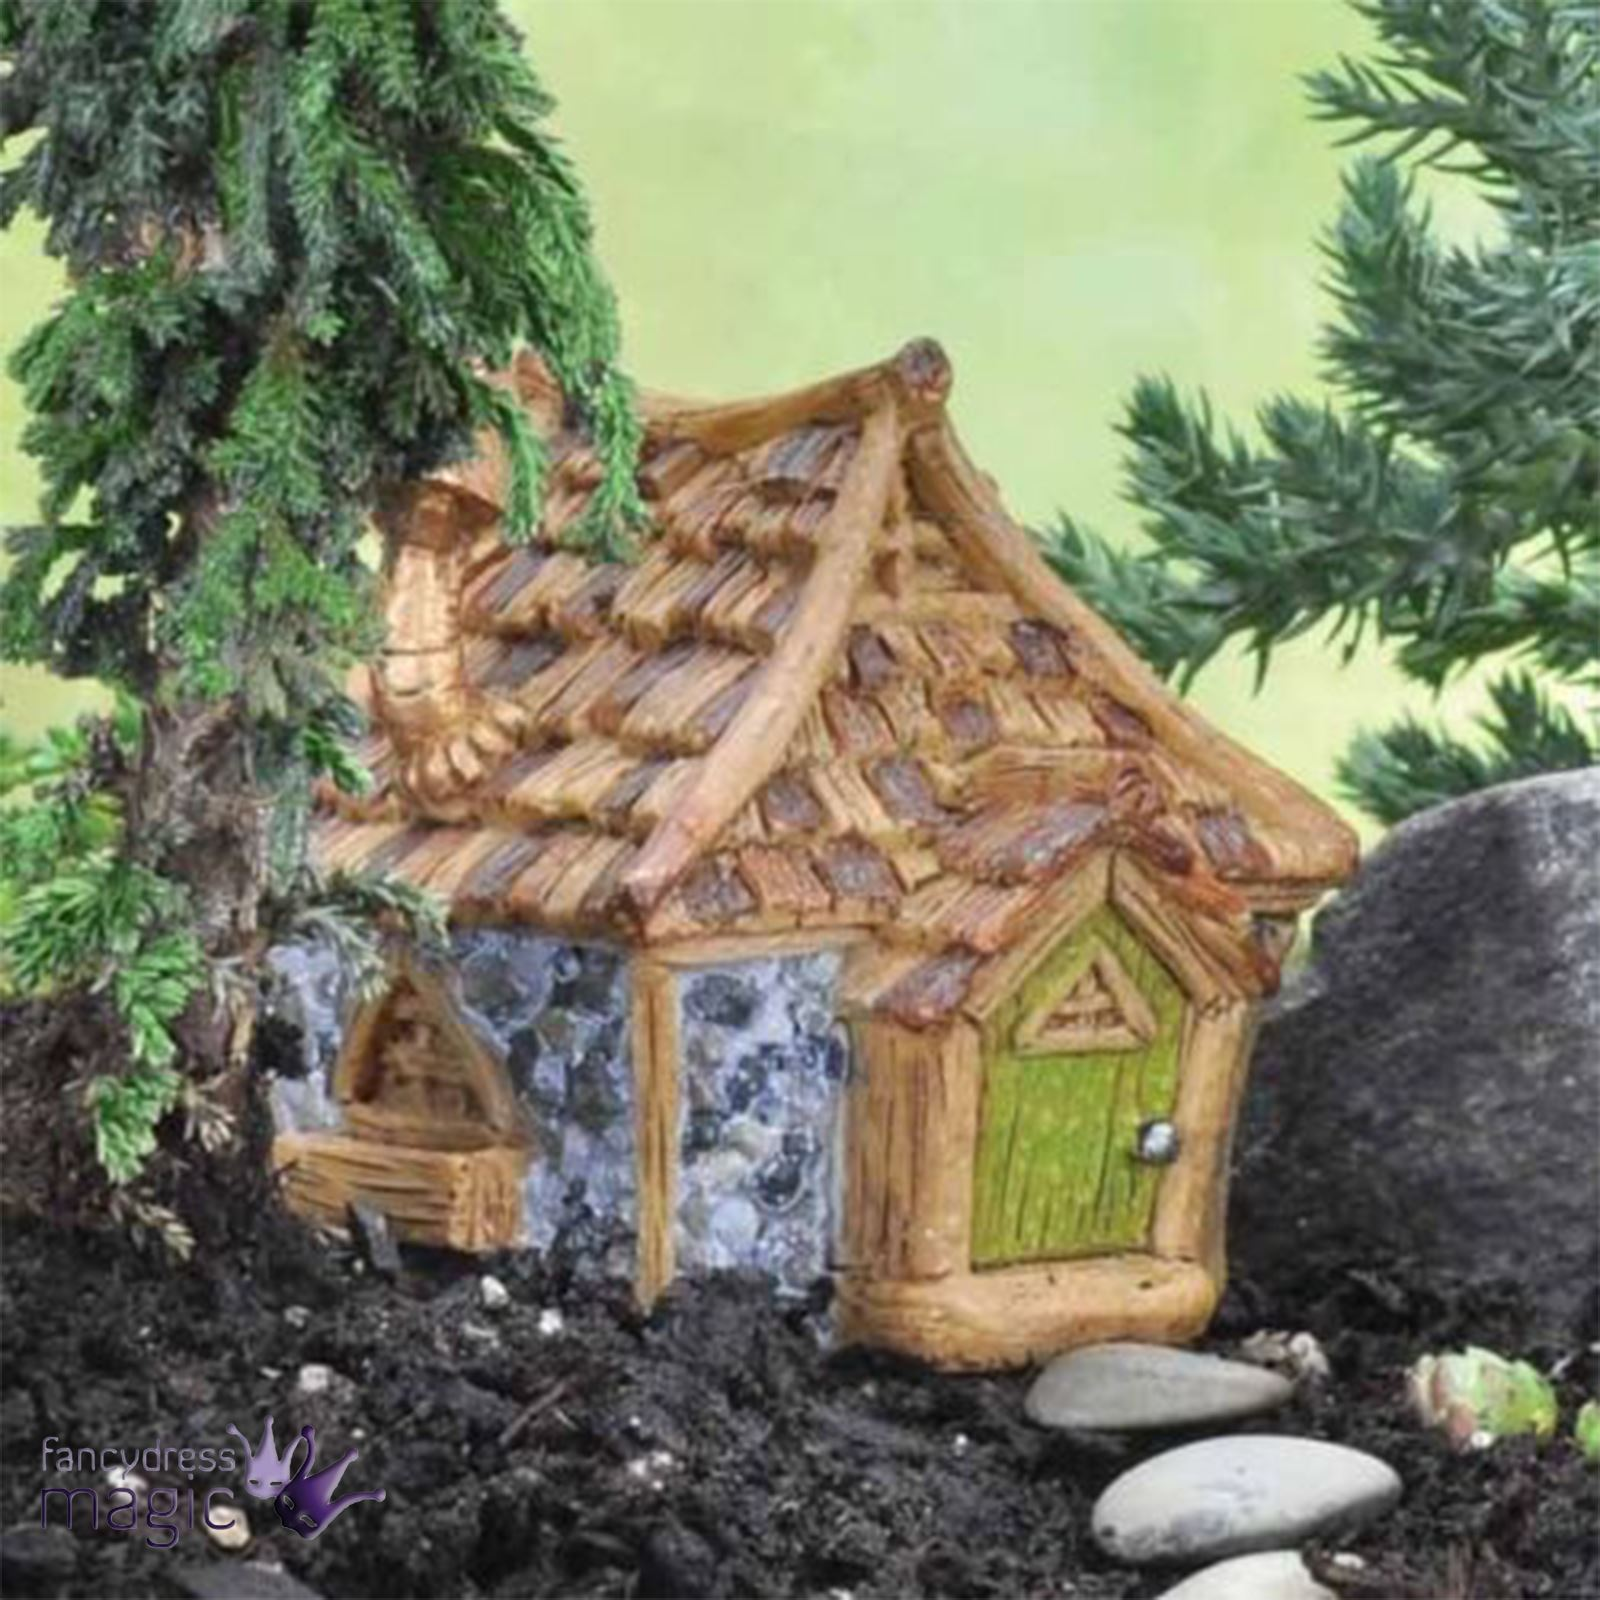 Fiddlehead Shingle Shingletown Gnome Fairy Garden Pixie House Home ...